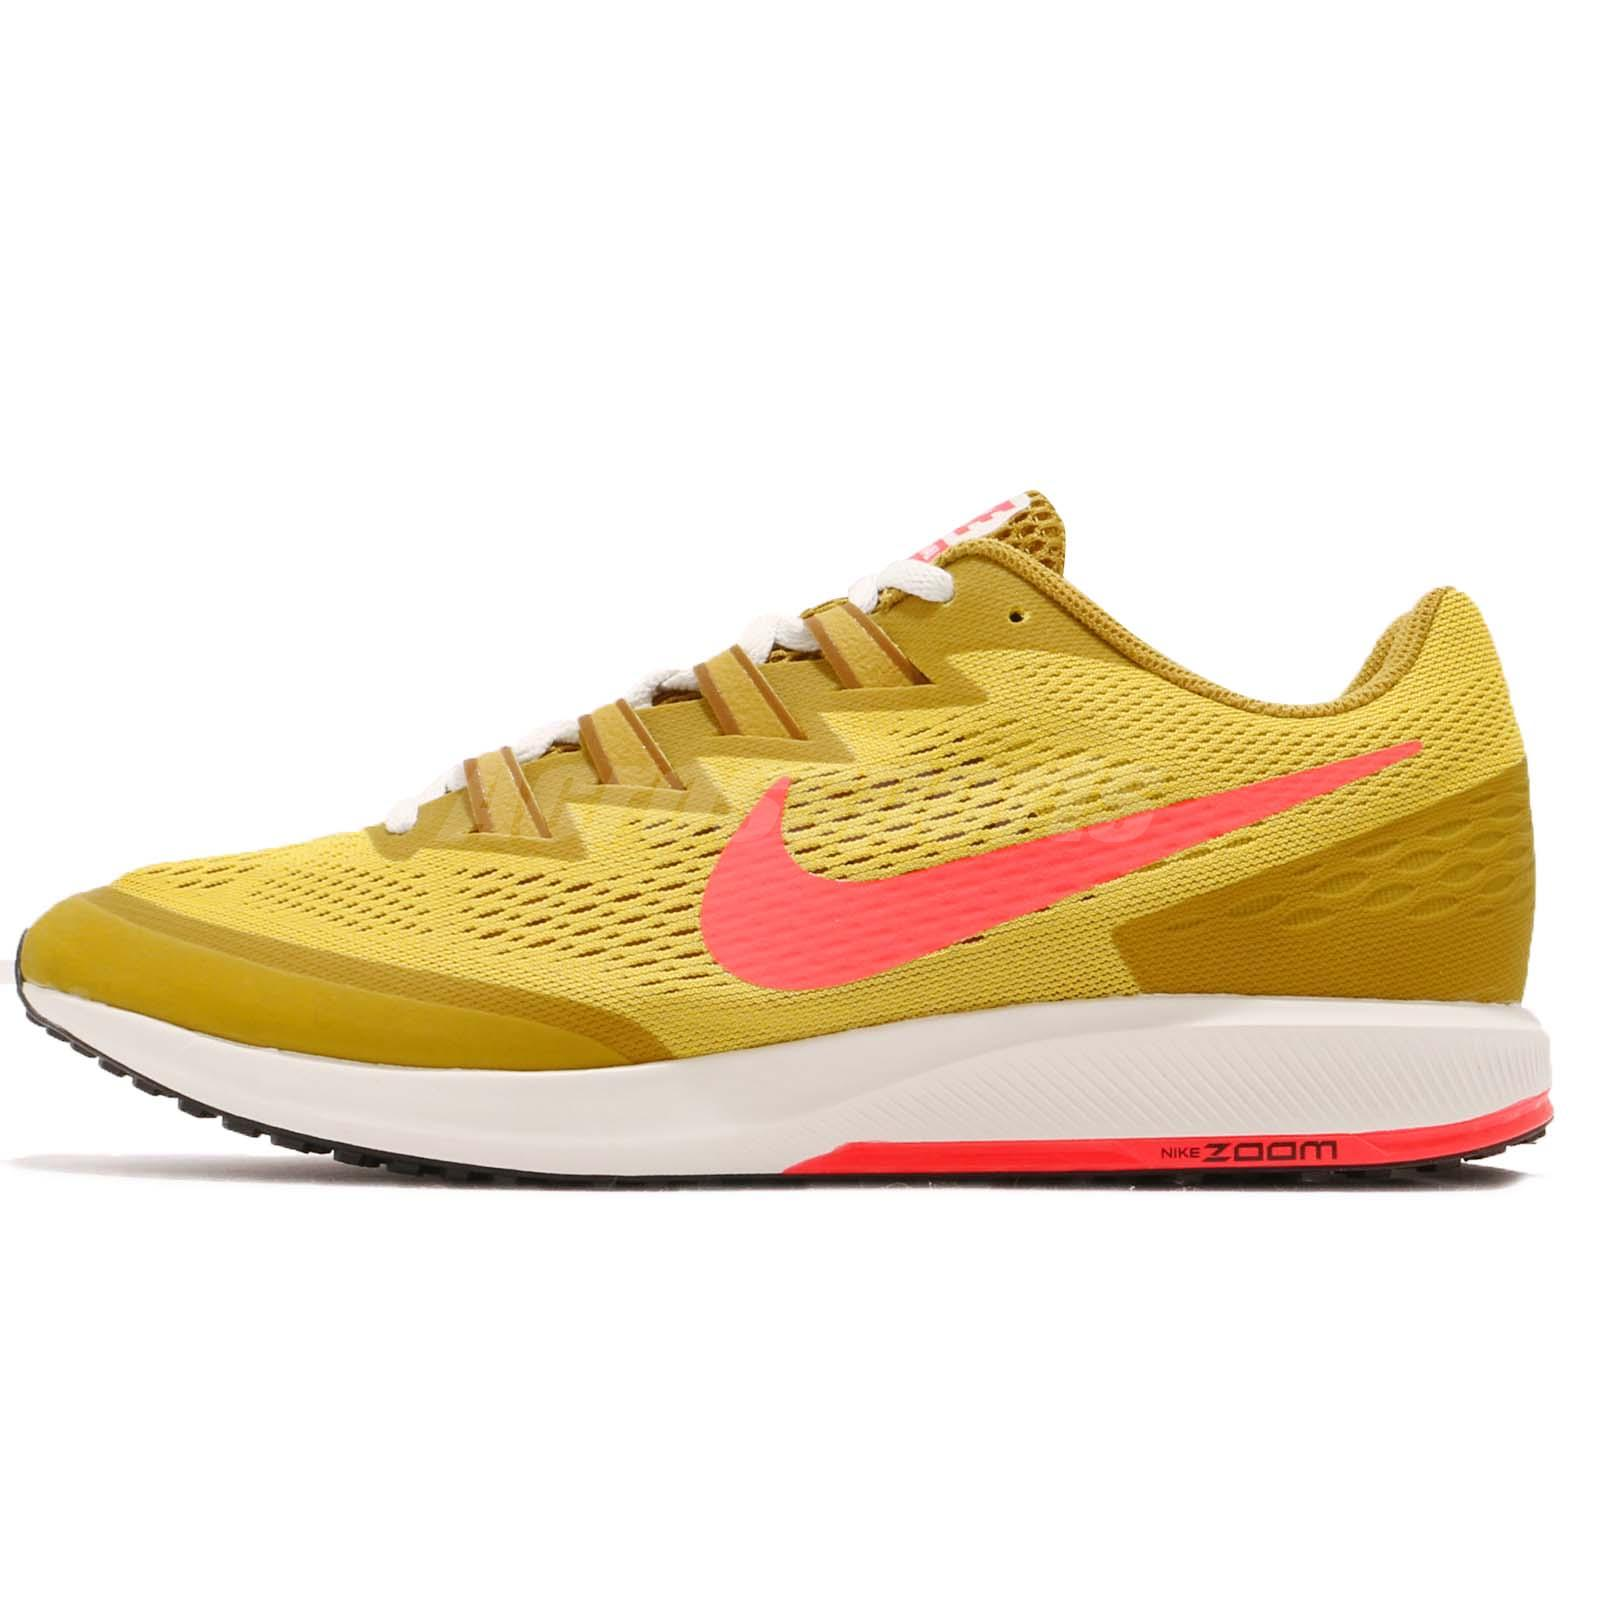 79d371f1a4 Nike Air Zoom Speed Rival 6 Yellow Pink Mens Racing Running Shoes 880553-706